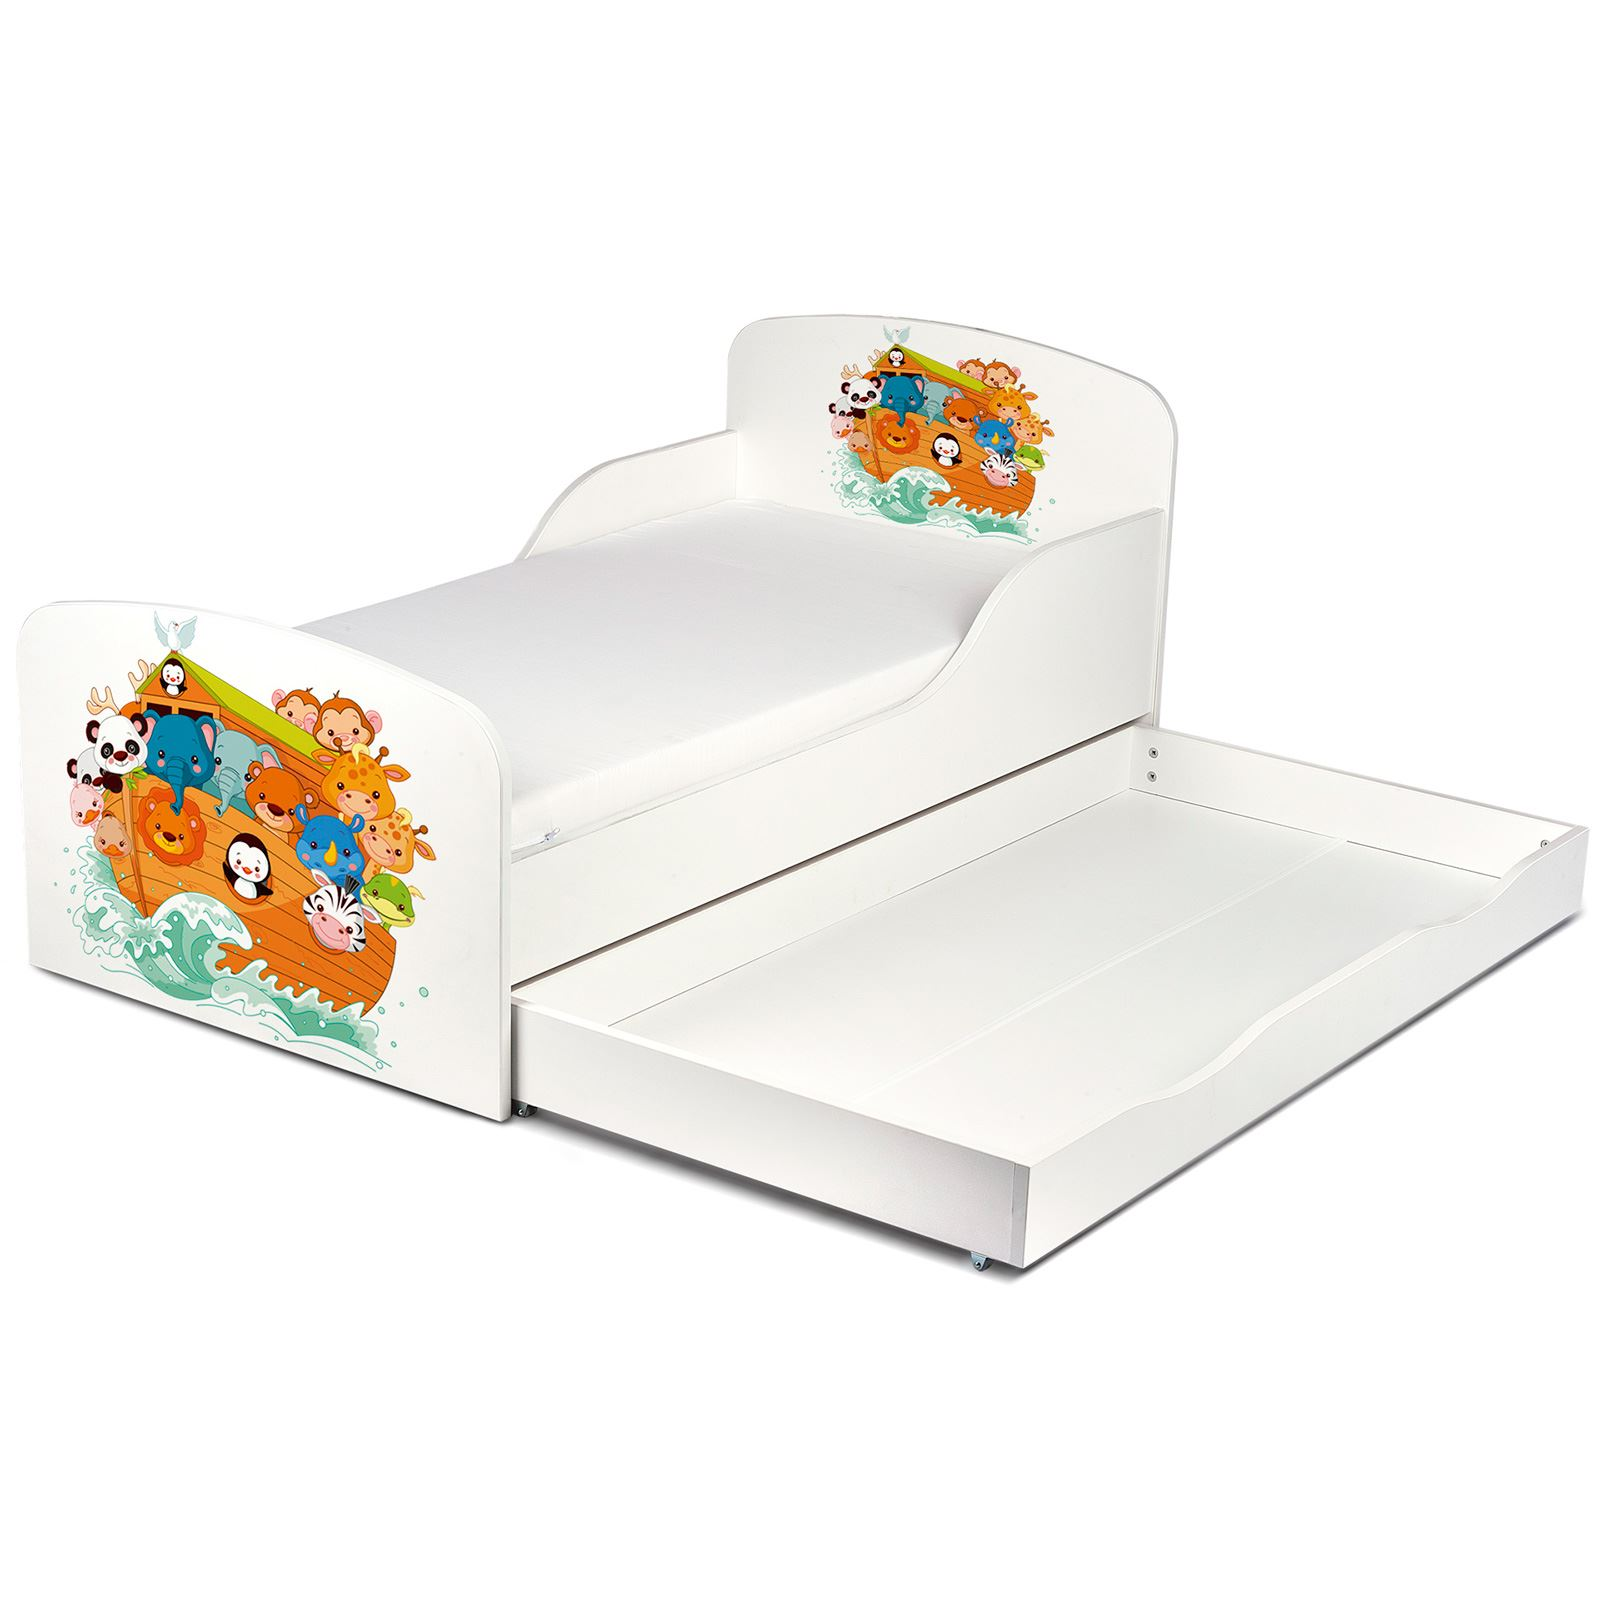 Price Right Home Noahs Ark Toddler Bed With Storage Fully Sprung Mattress New